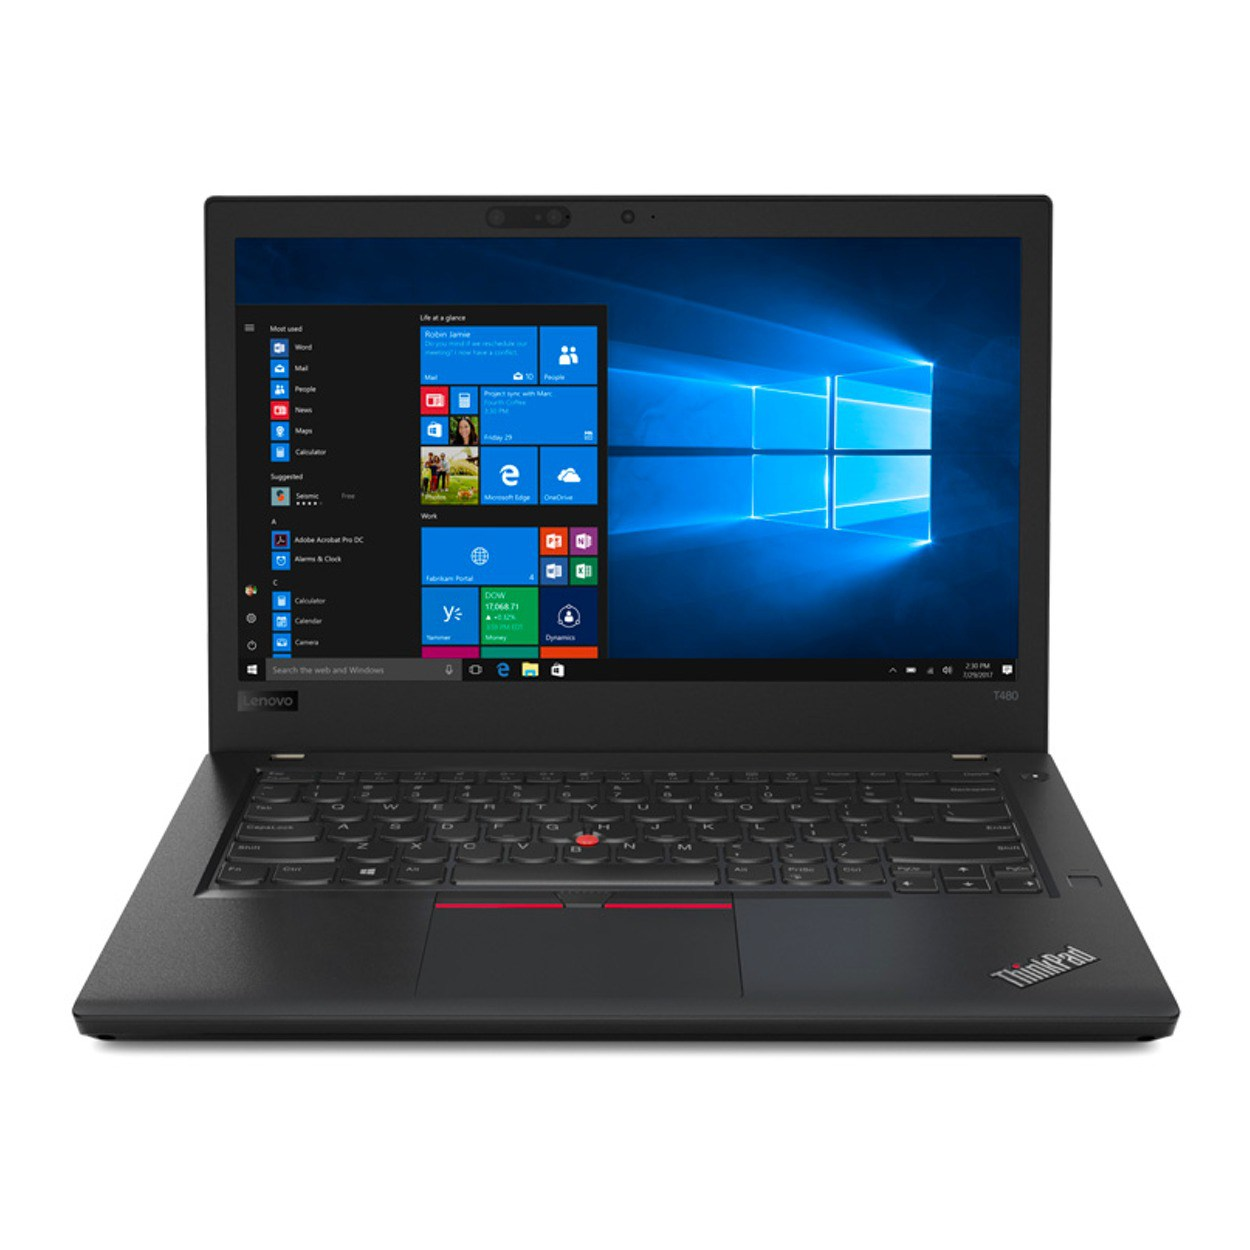 Lenovo ThinkPad T480s Core i7